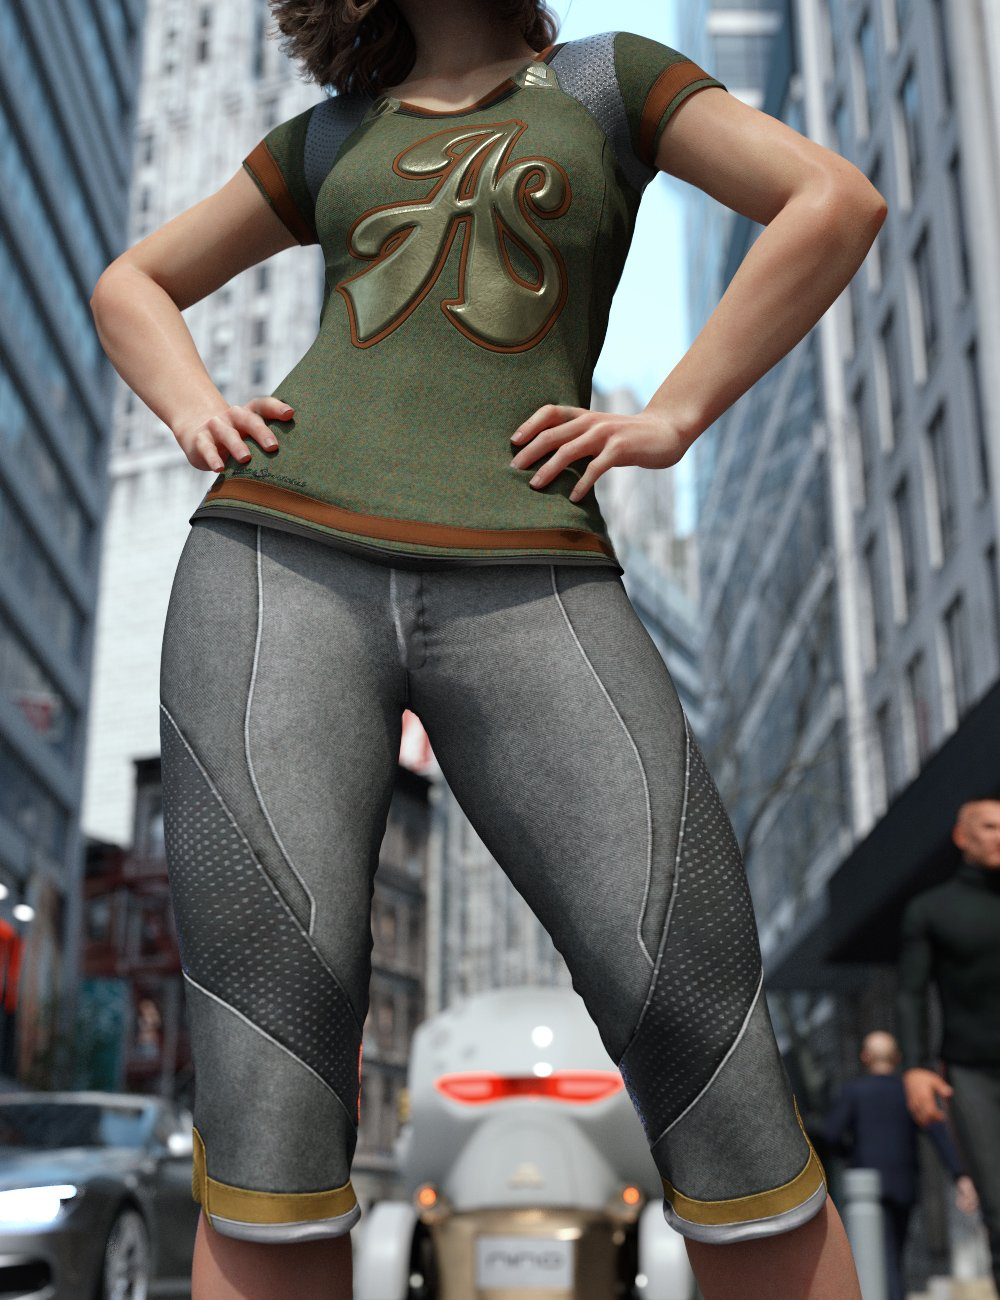 Sporty for Everyday 2 by: Aeon Soul, 3D Models by Daz 3D